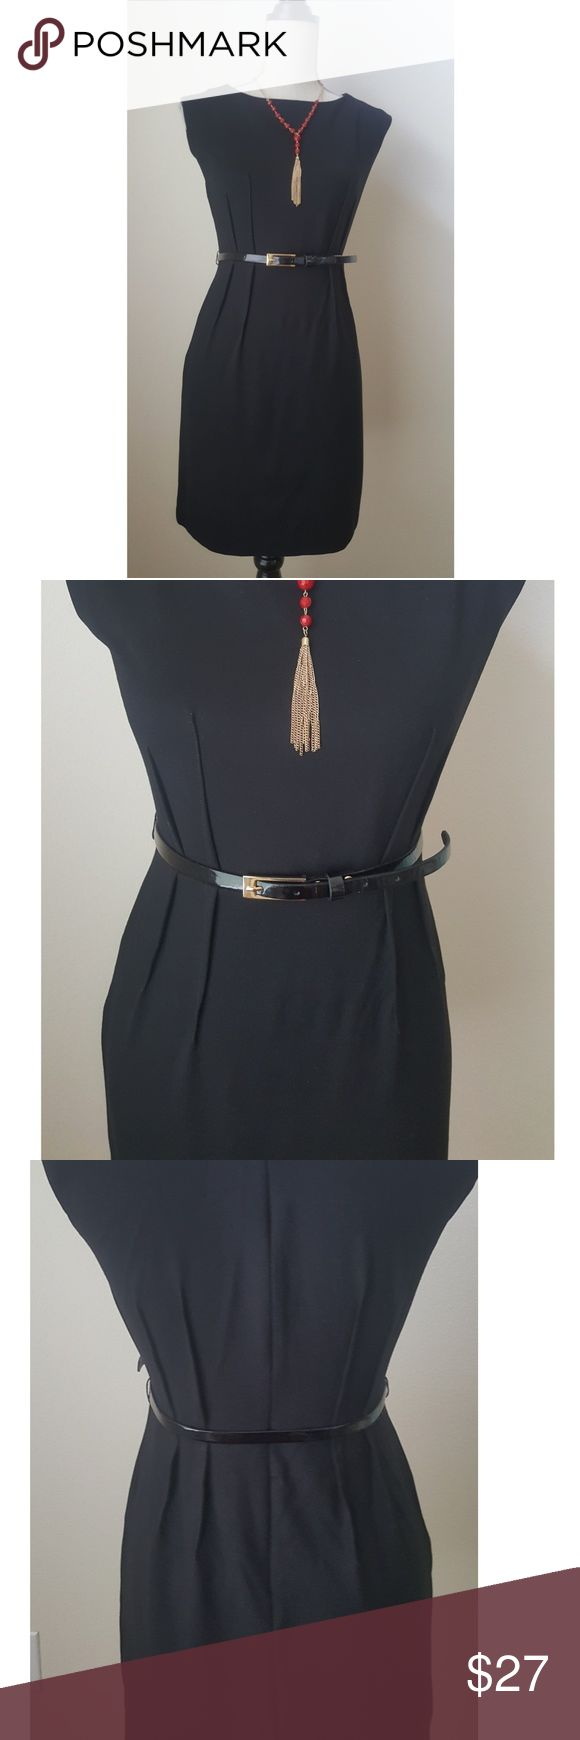 """Ann Taylor Loft  black dress Made of 65% Rayon, 31% Nylon, 4% spandex 35"""" long Beautiful cocktail dress in excellent condition  Make it yours LOFT Dresses"""